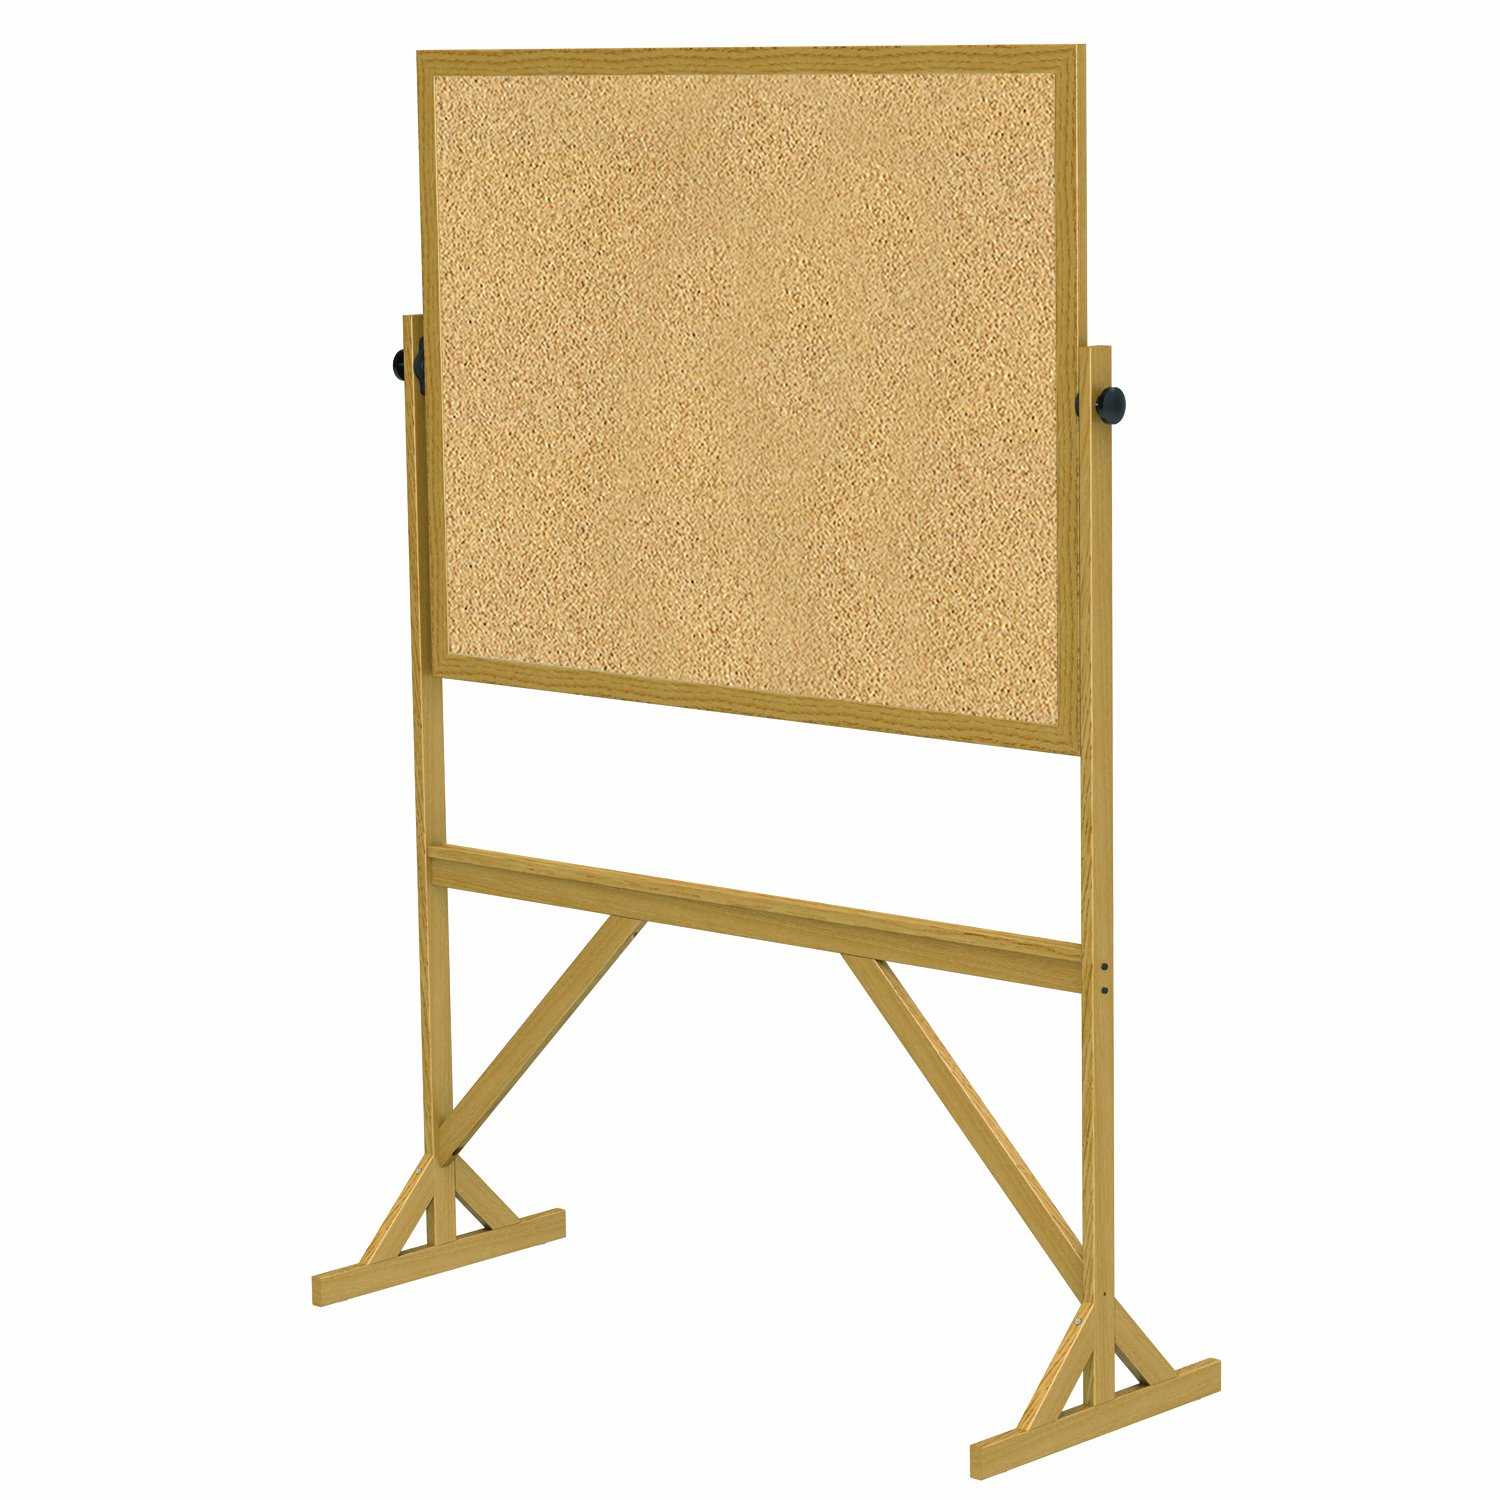 Ghent 72''x 531/4'' Wood Frame Reversible Natural Cork/Natural Cork - Made in the USA